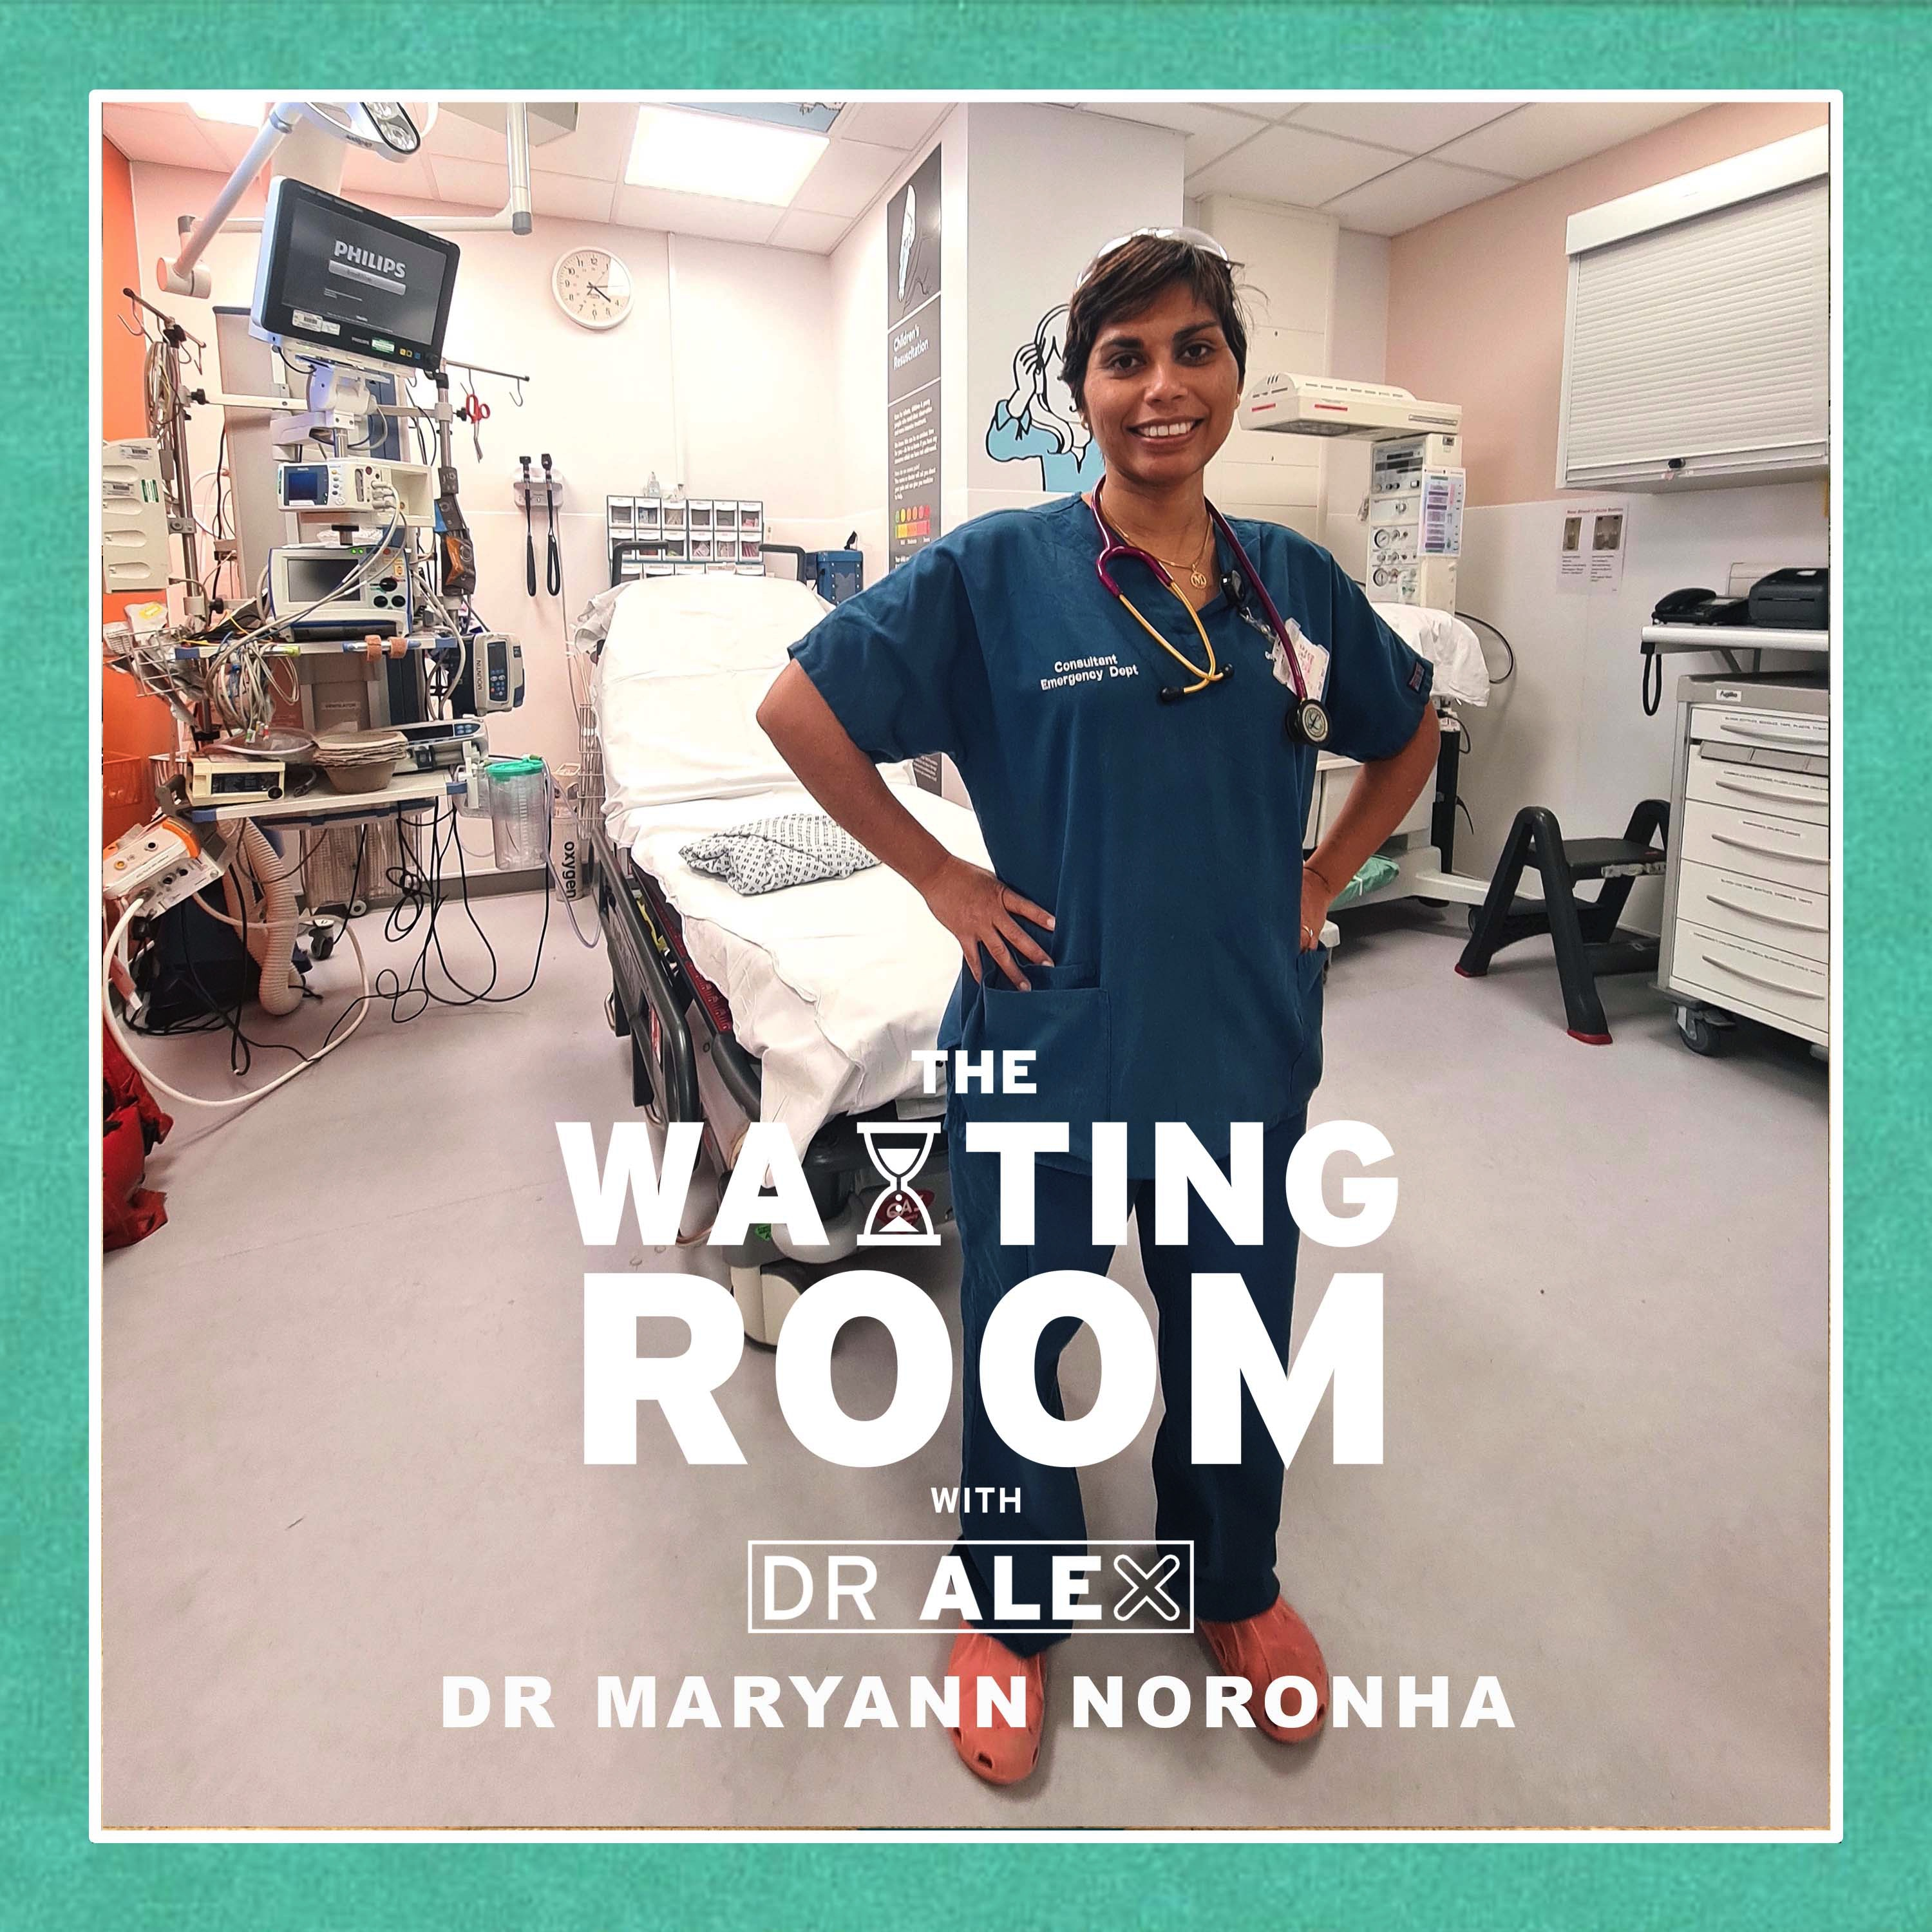 Building Hospitals in Conflict Zones With Dr Maryann Noronha